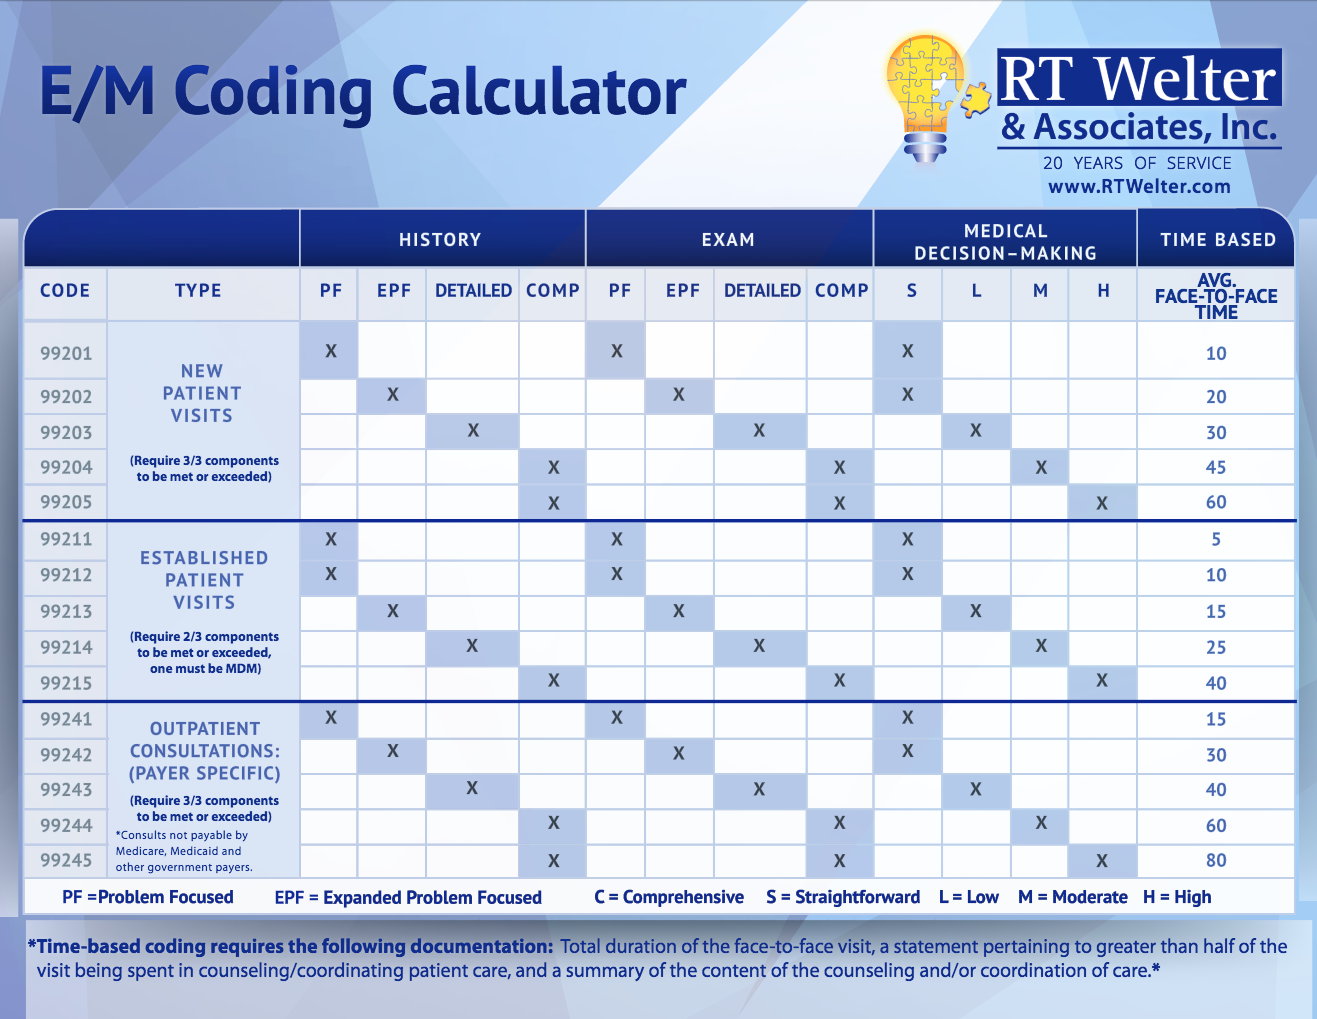 Worksheets E&m Coding Worksheet coding resources available to assist providers at rt welter management coding